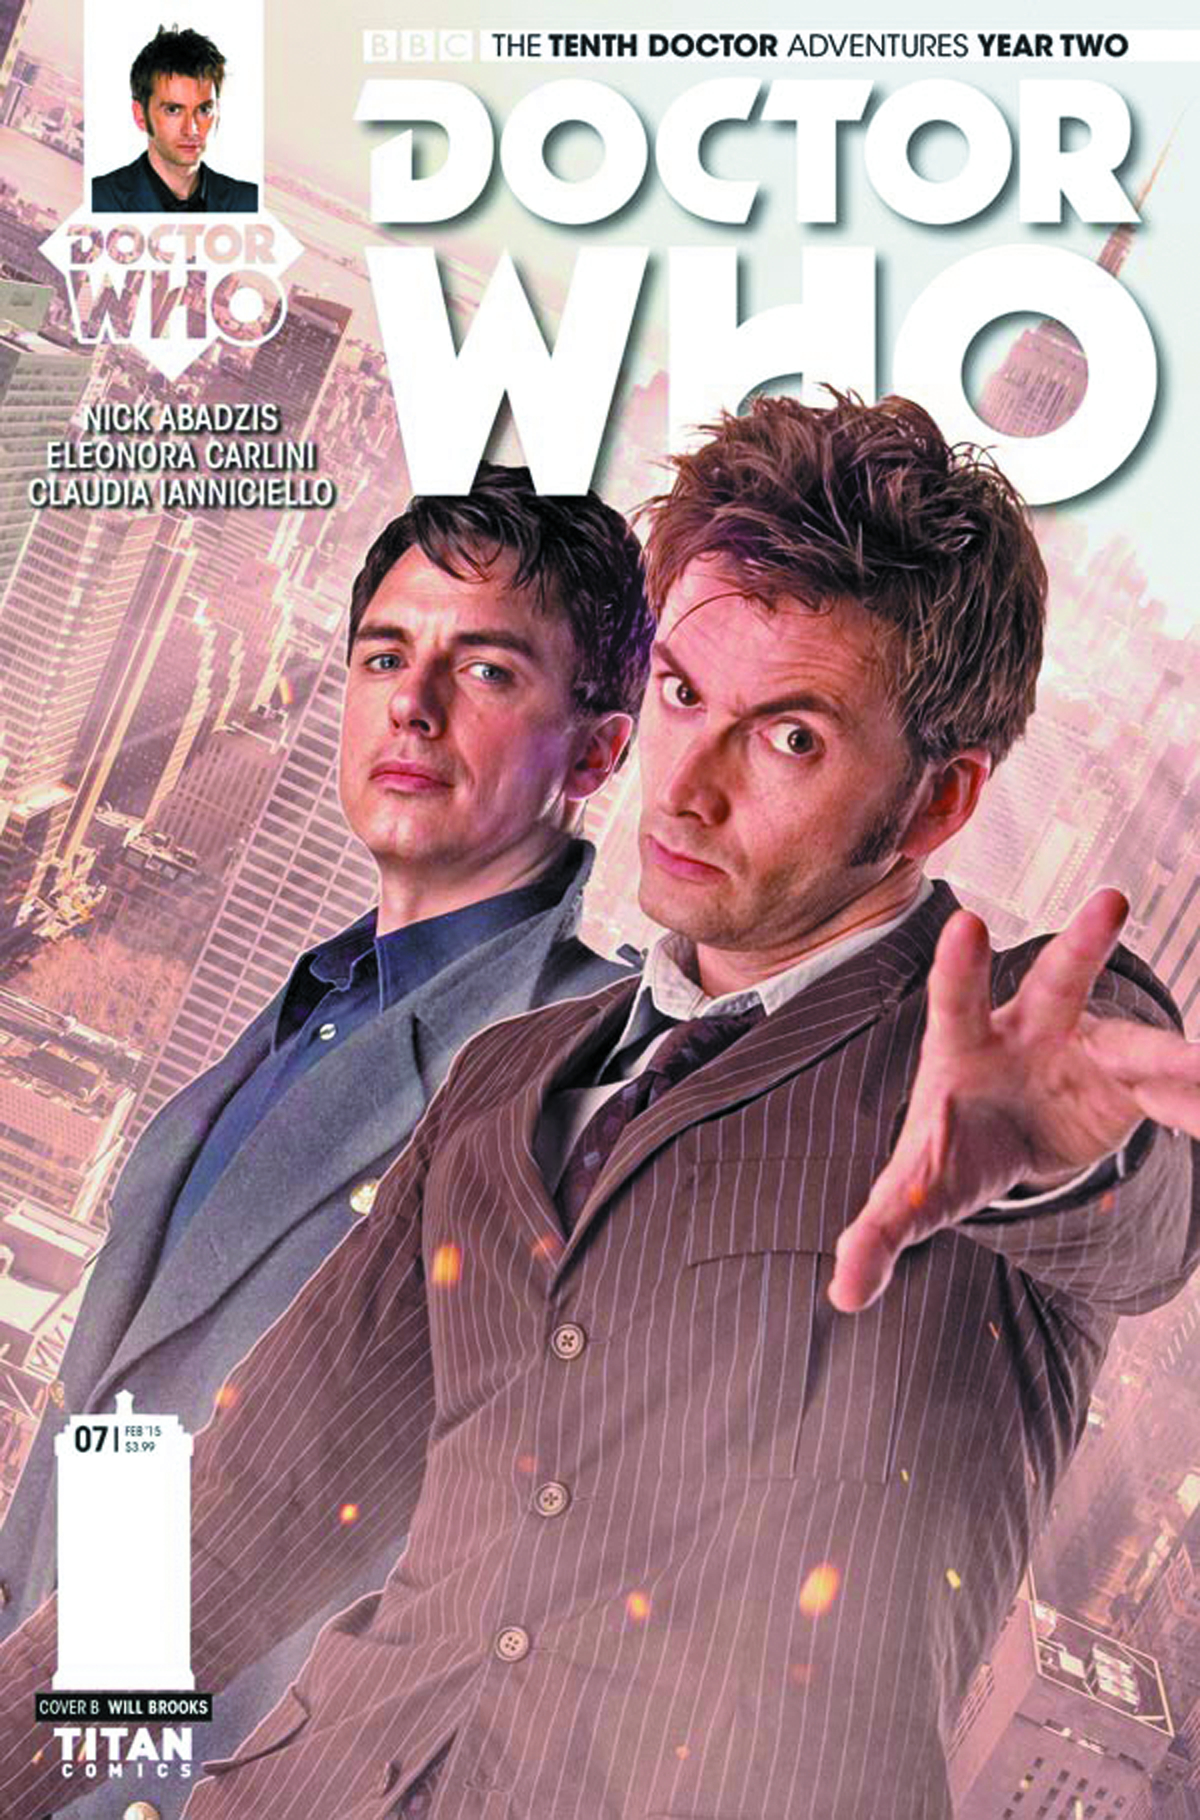 DOCTOR WHO 10TH YEAR TWO #7 CVR B PHOTO